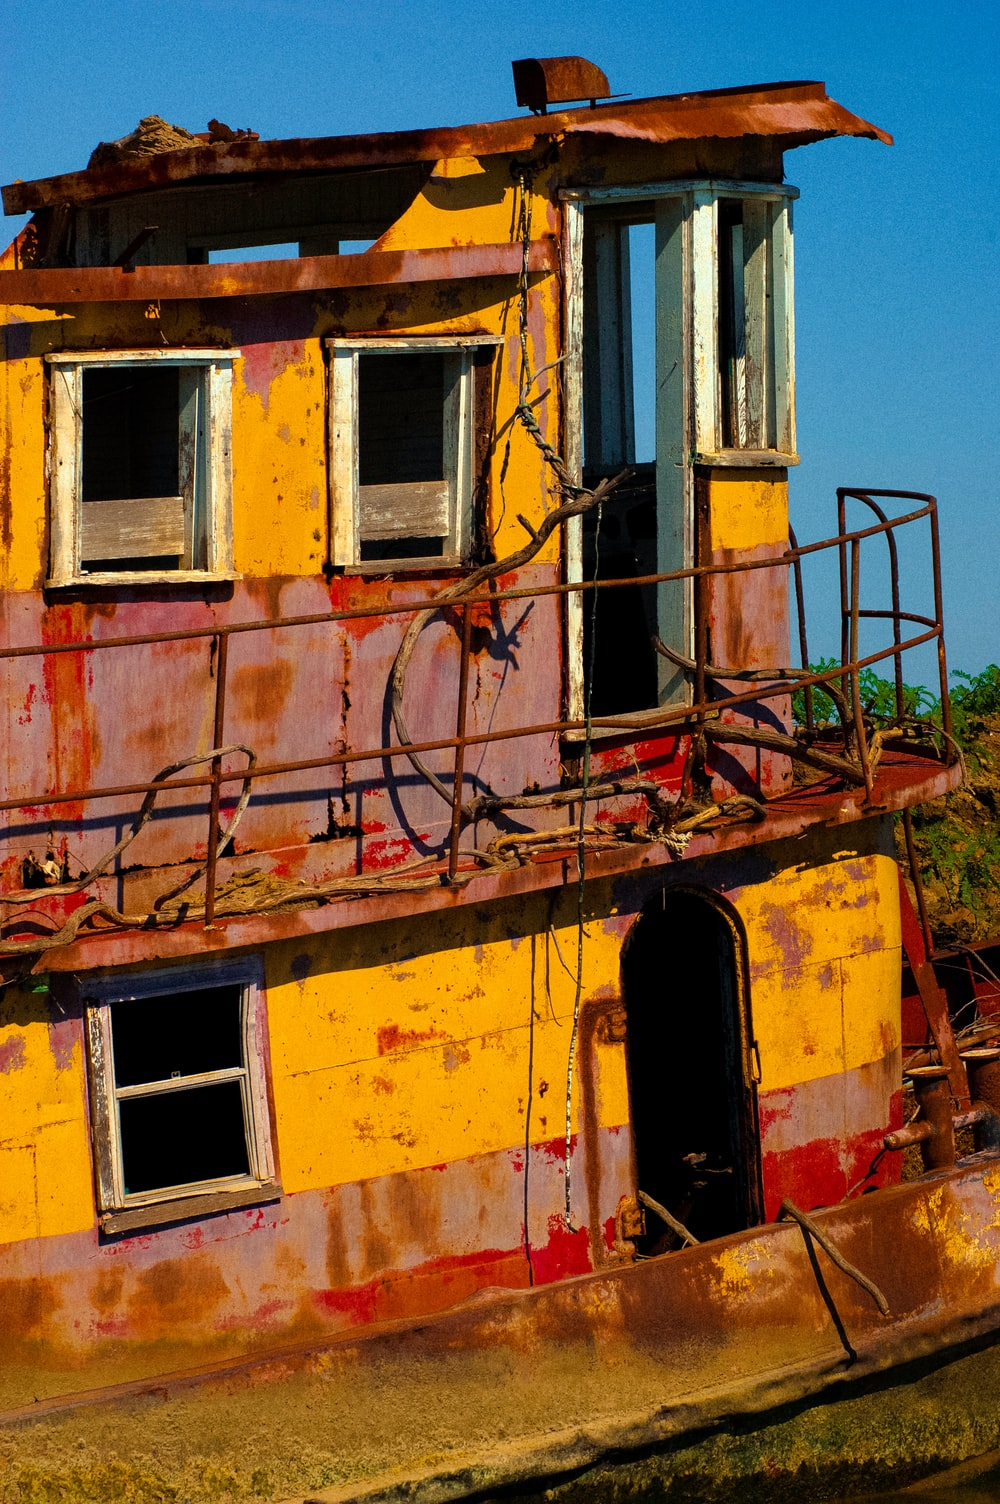 yellow and red 2-decker boat